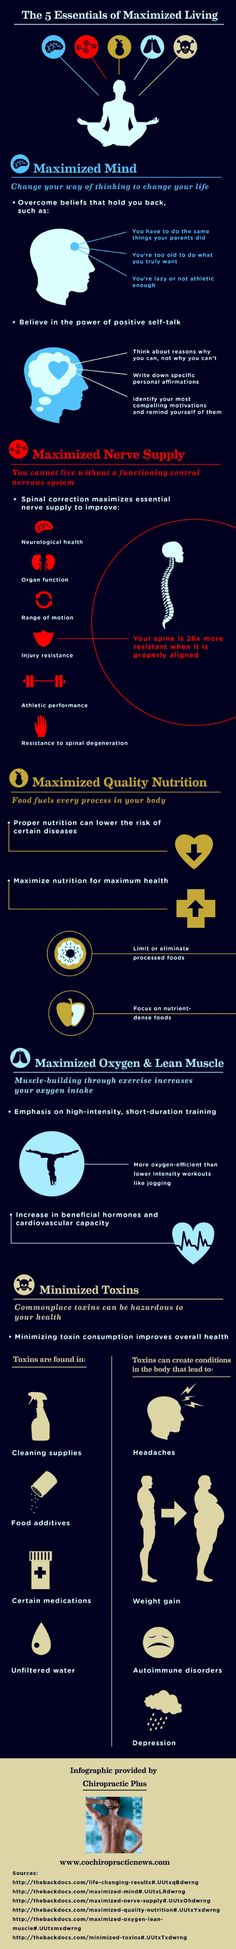 43 Best Maximized Living Images Health Wellness Healthy Life